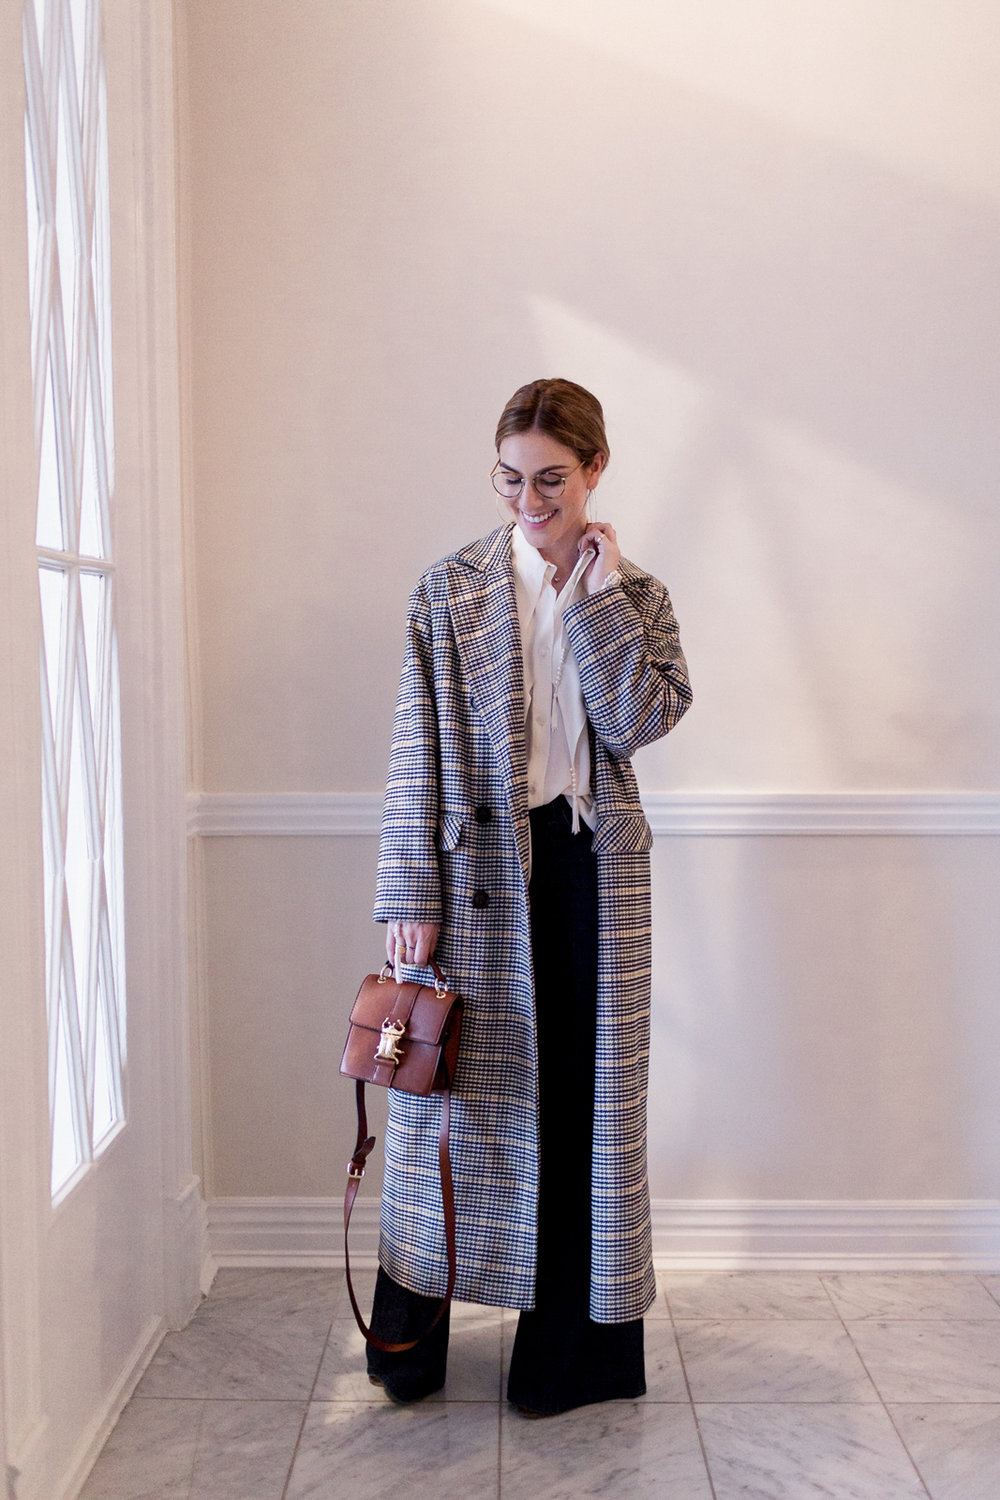 Eldridge Edit_anna_e_cottrell_fashion_blog_blogger_nordstrom_topshop_houndstooth_double_breasted_duster_coat_sale_topshop_garret_leight_glasses_thatch_lola_14k_gold_hoops_vintage_zara_bug_bag_mgb_photo_13.jpg